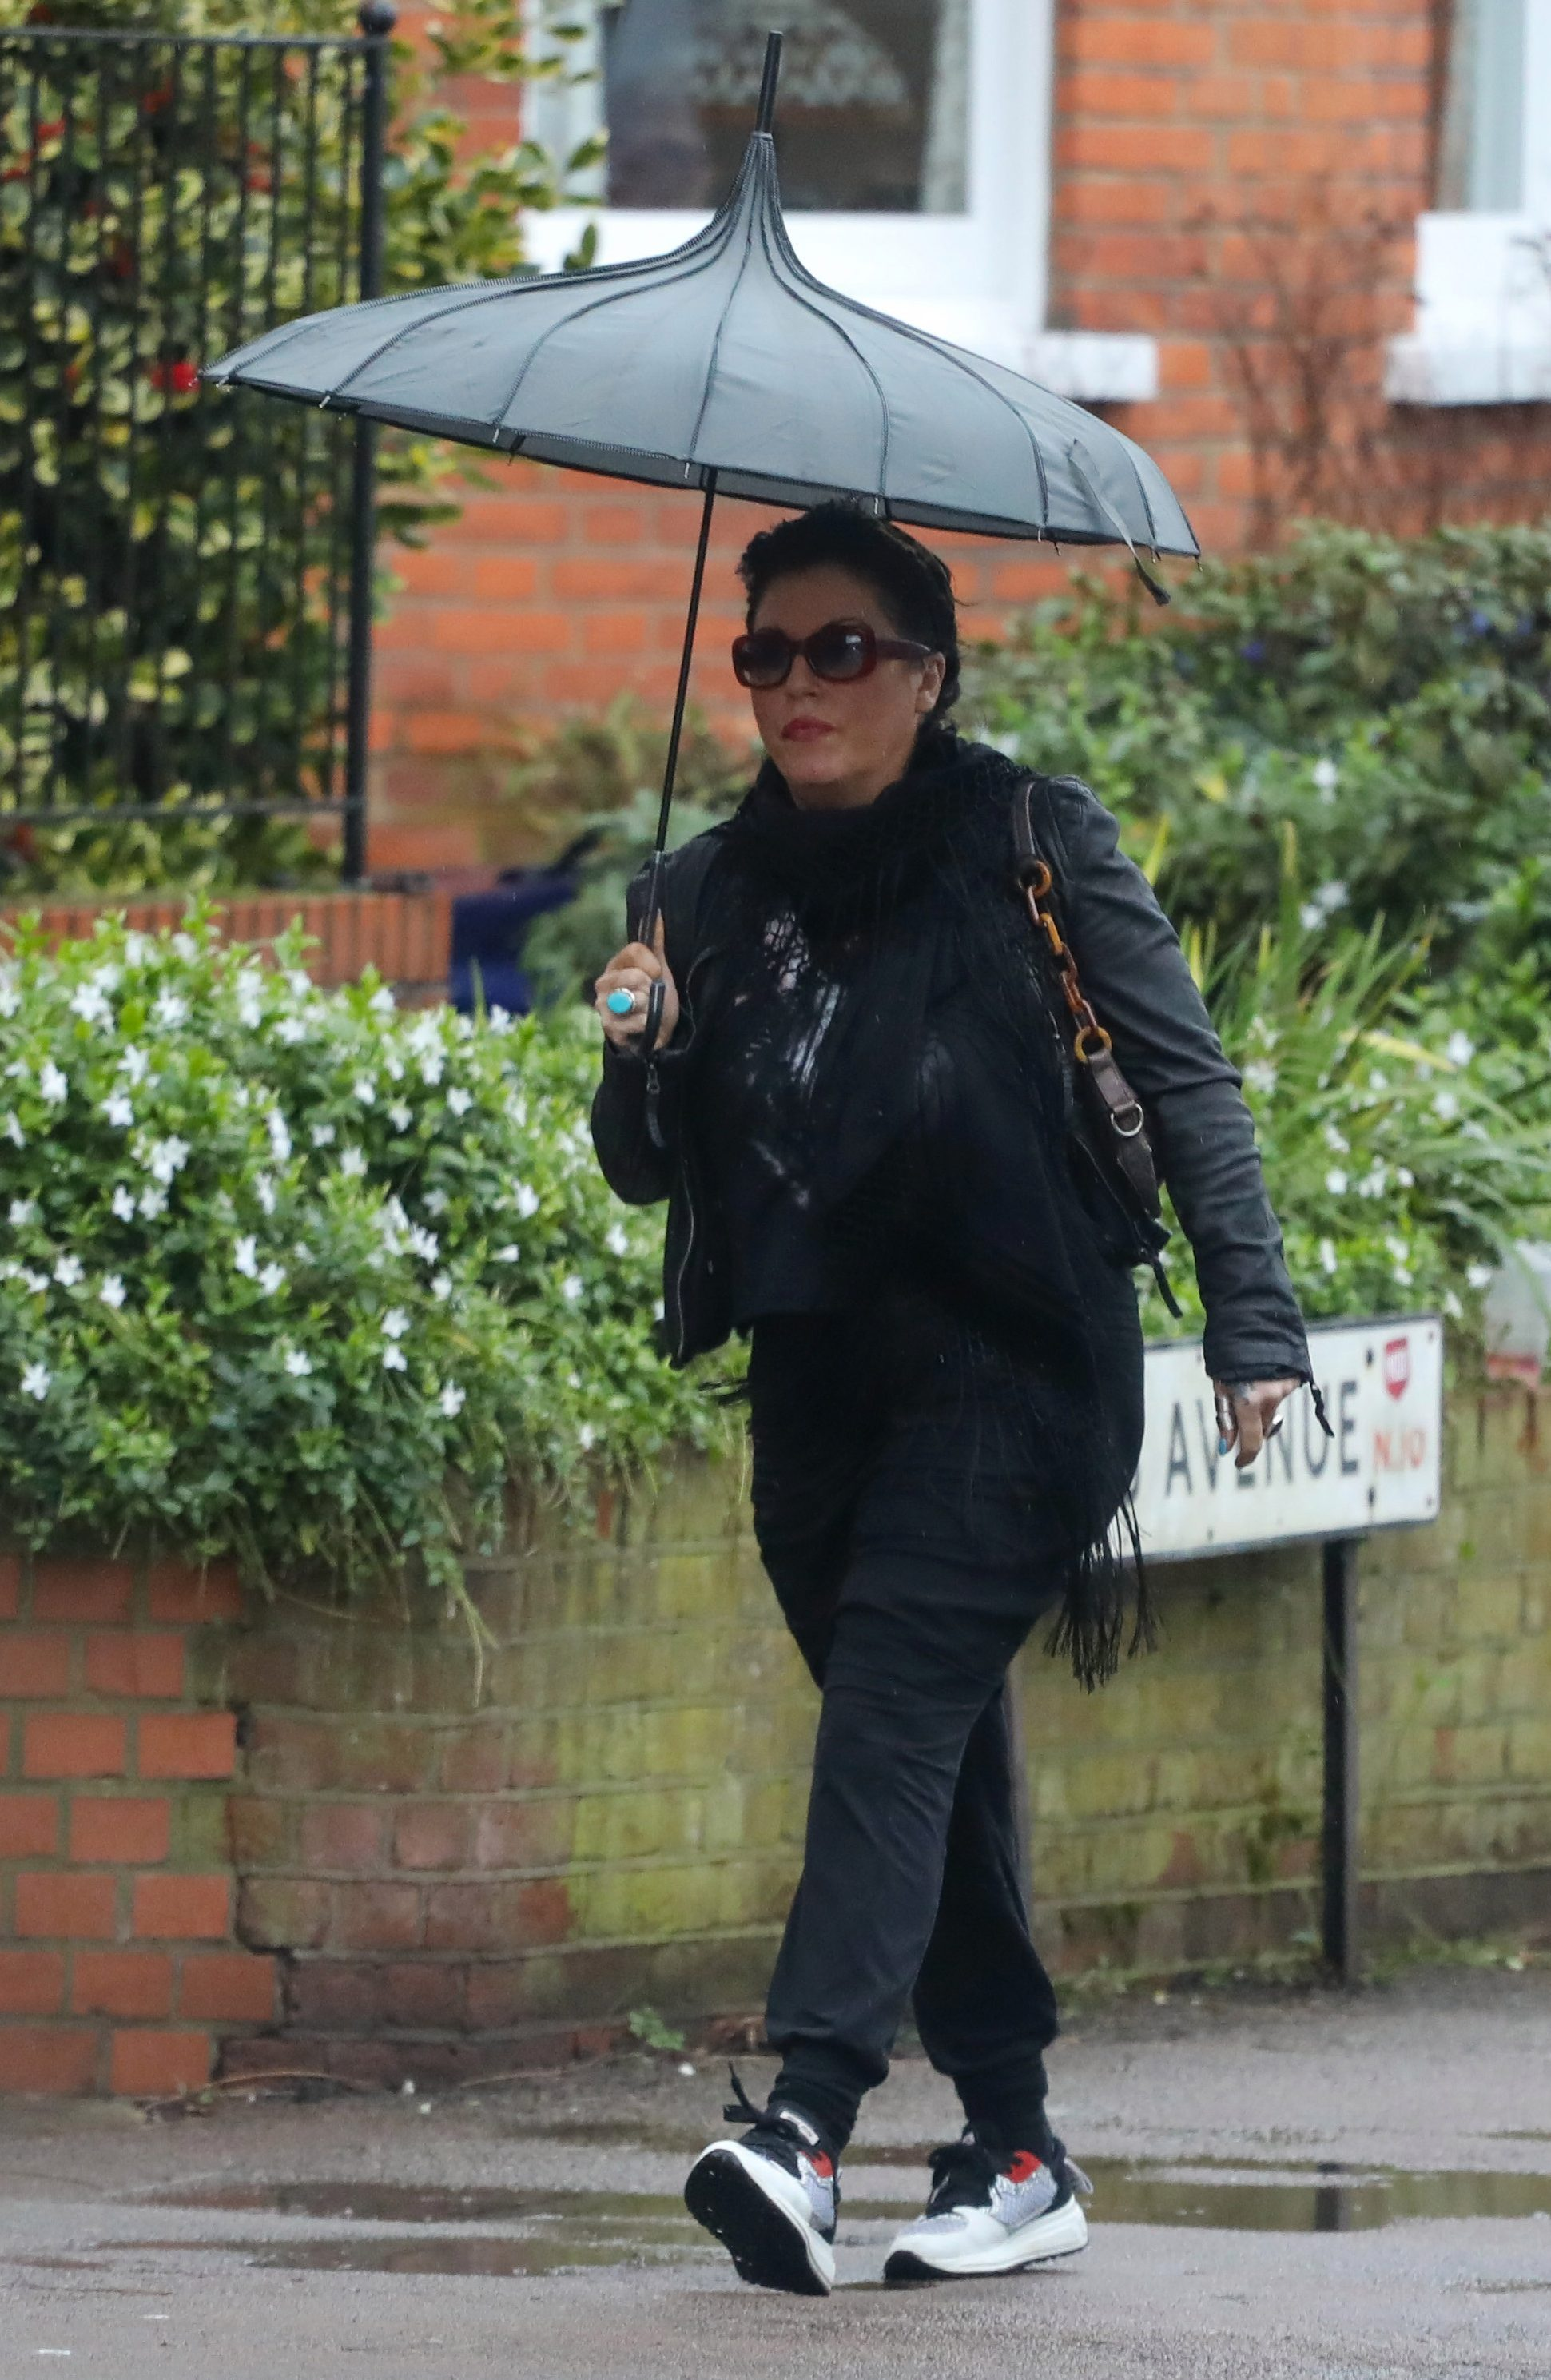 Jessie hides behind sunglasses as she is pictured for the first time since her suspension